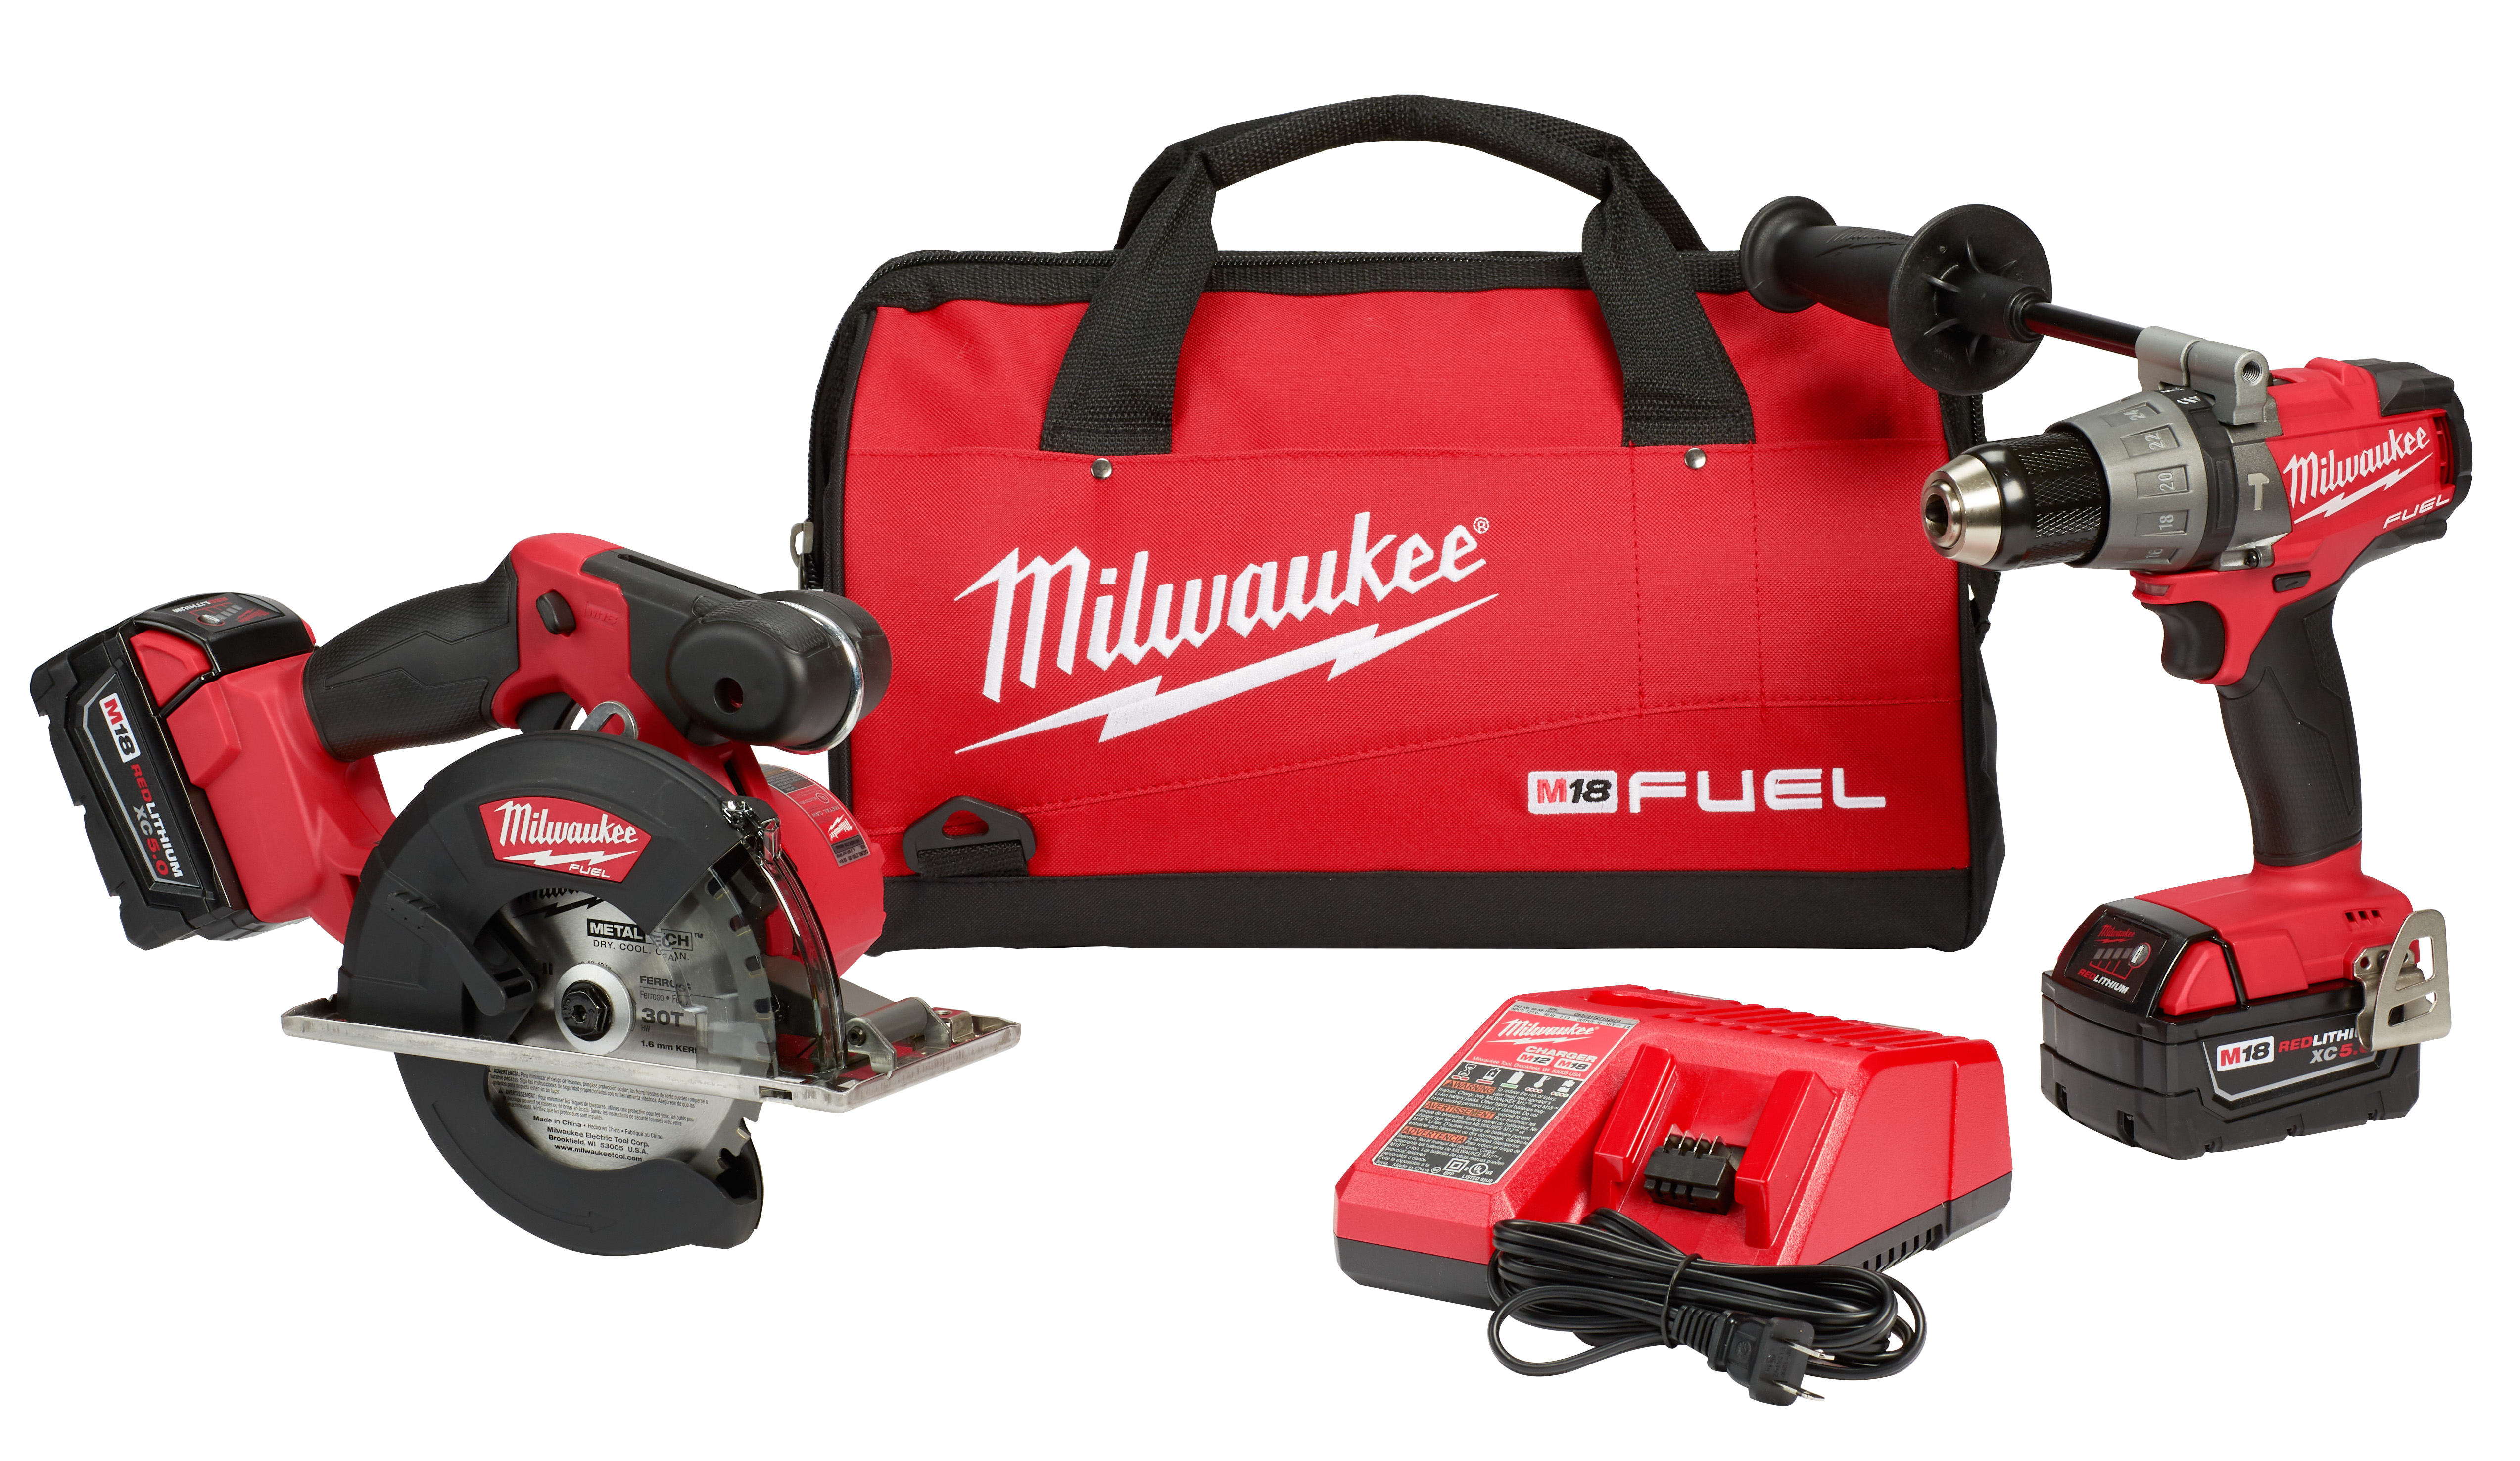 Milwaukee® 2898-22 Cordless Hammer Drill/Driver and Circular Saw Combination Kit, 1/2 in Keyless Chuck, 18 VDC